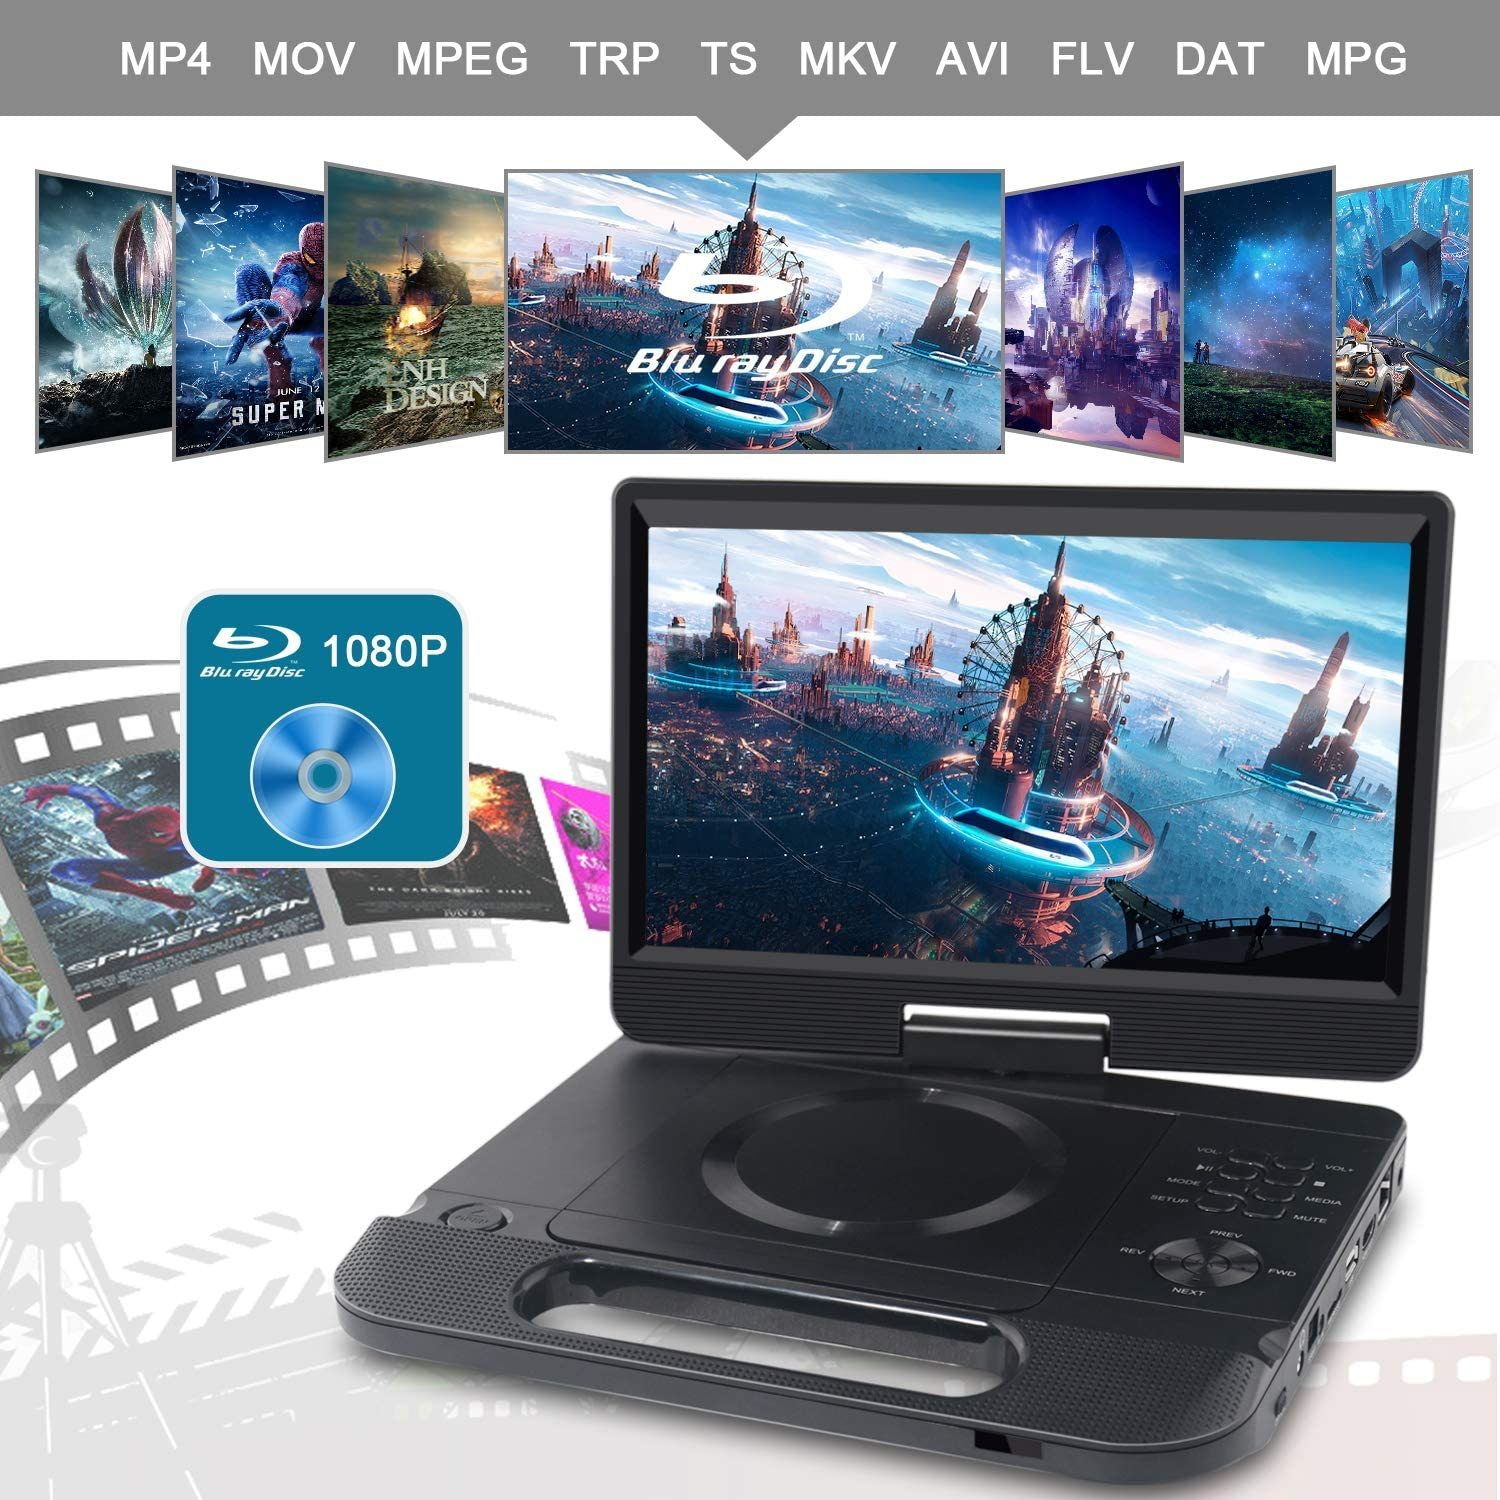 10.1 Inch Portable Blu-Ray DVD Player with Rechargeable Battery, Support USB/SD Card, HDMI Out & AV in, Snyc Screen, 1080P Video, Dolby Audio, Last Memory(Black)